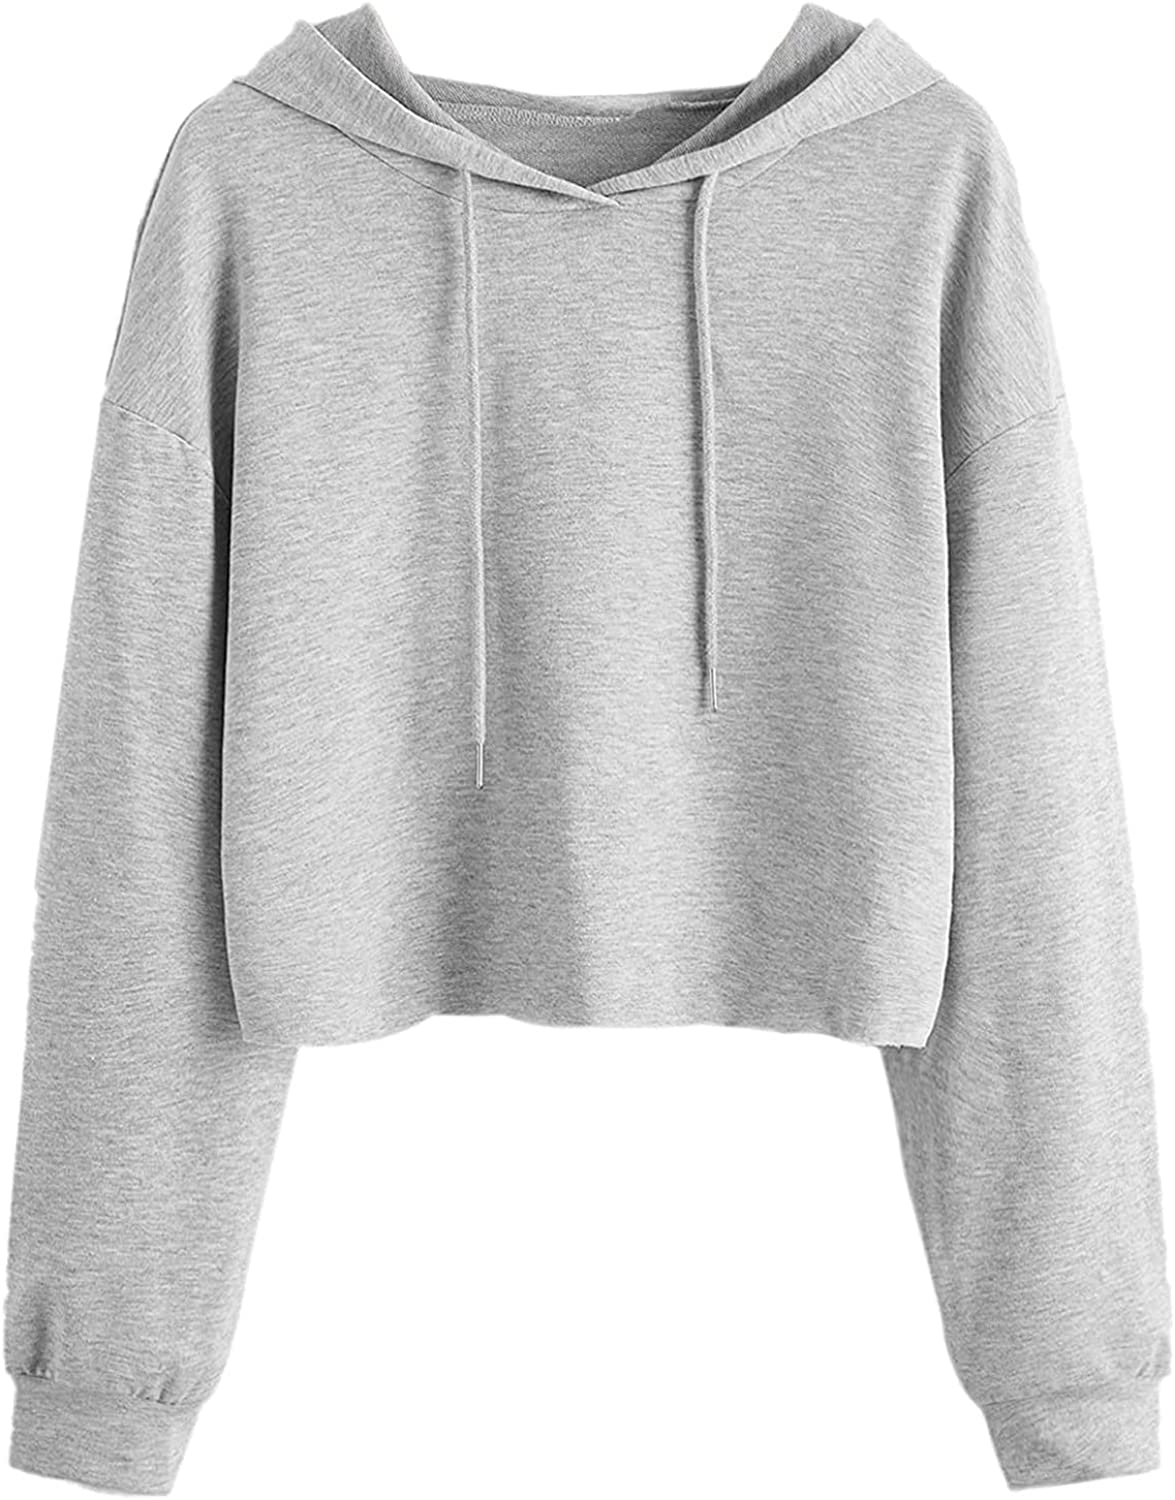 AODONG Sweatshirts for Women Fashion Long Sleeve Hoodie Soft Jumper Hooded Casual Pullover Tops Blouses